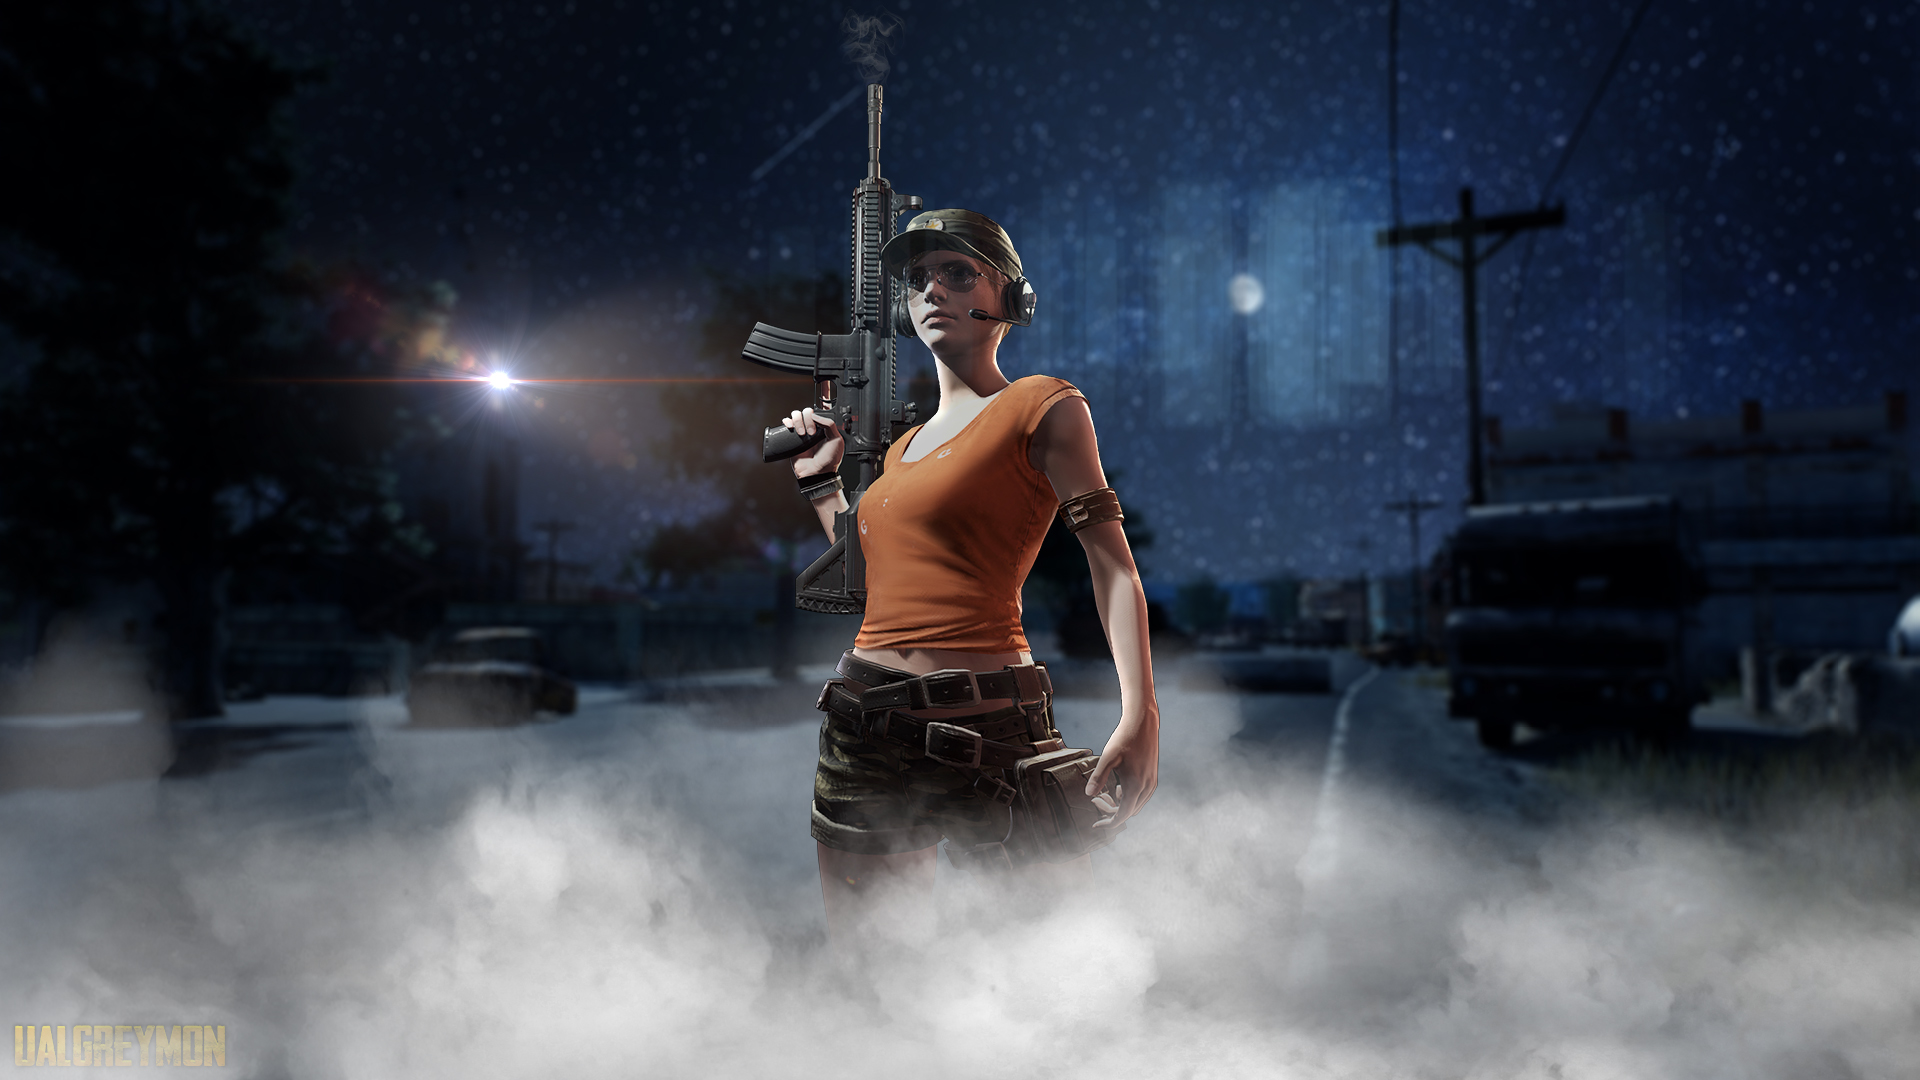 Pubg Night Hd Games 4k Wallpapers Images Backgrounds Photos And